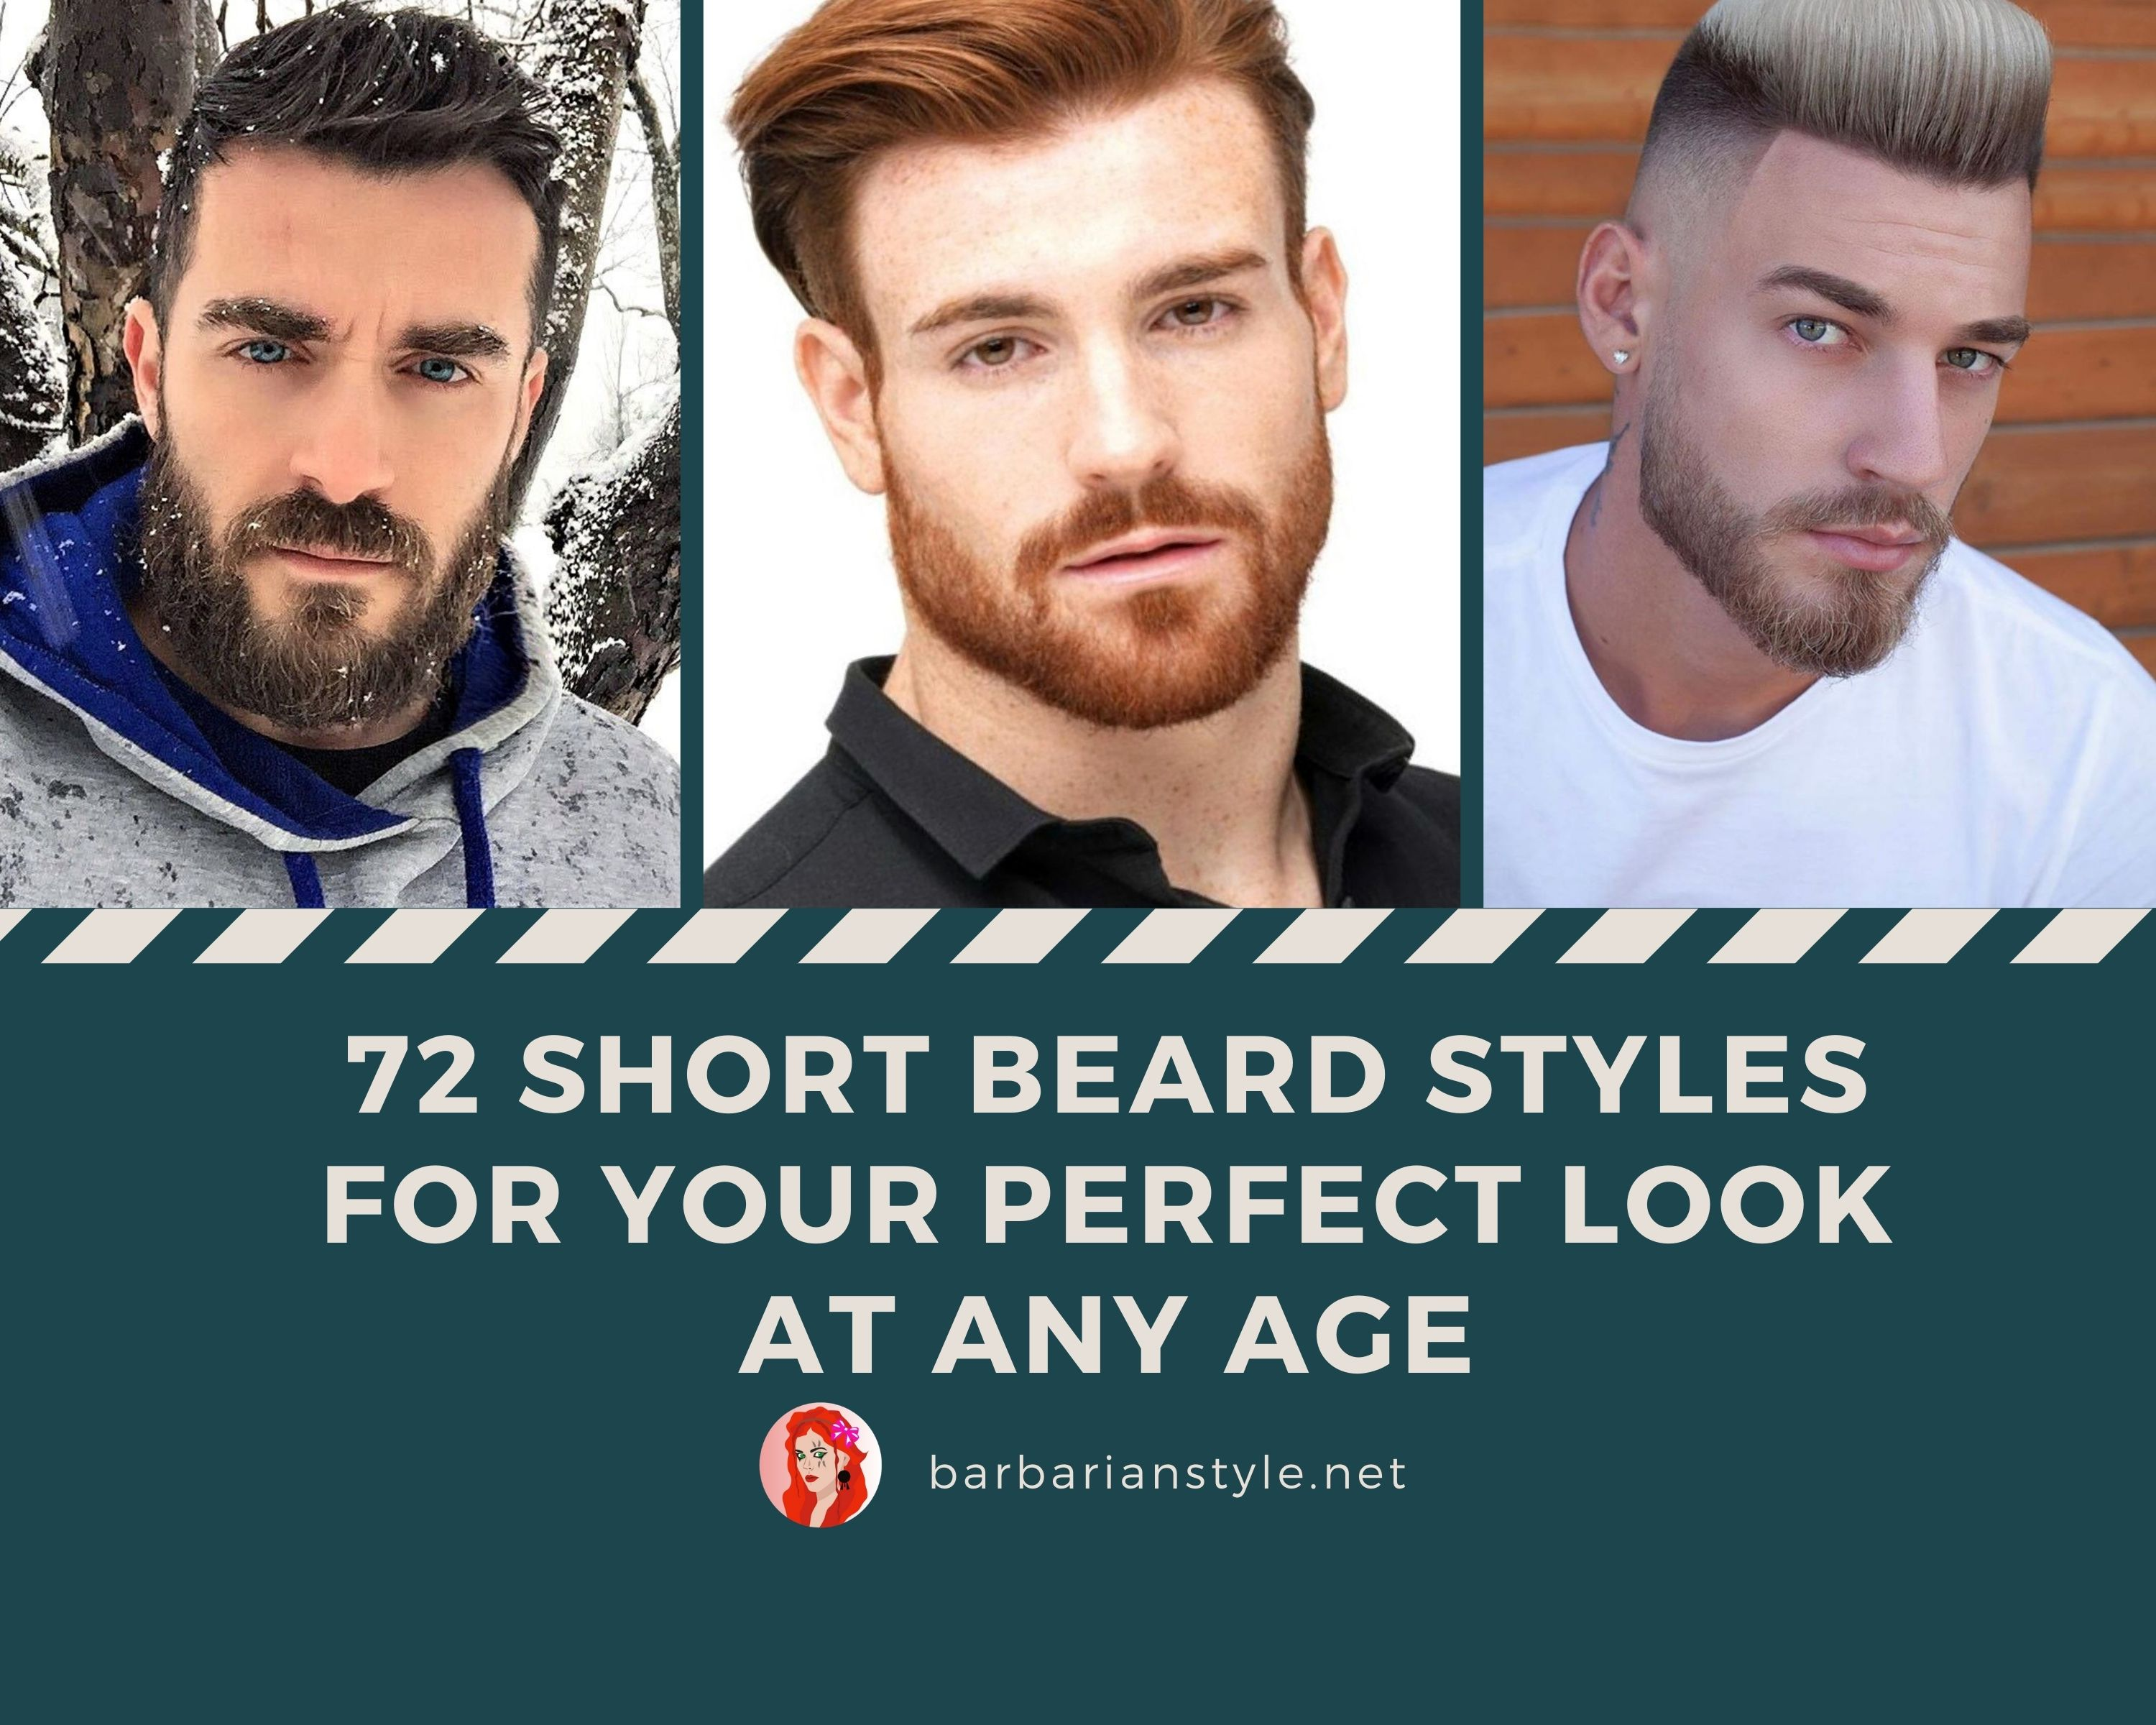 Short Beard Styles for Your Perfect Look at Any Age.